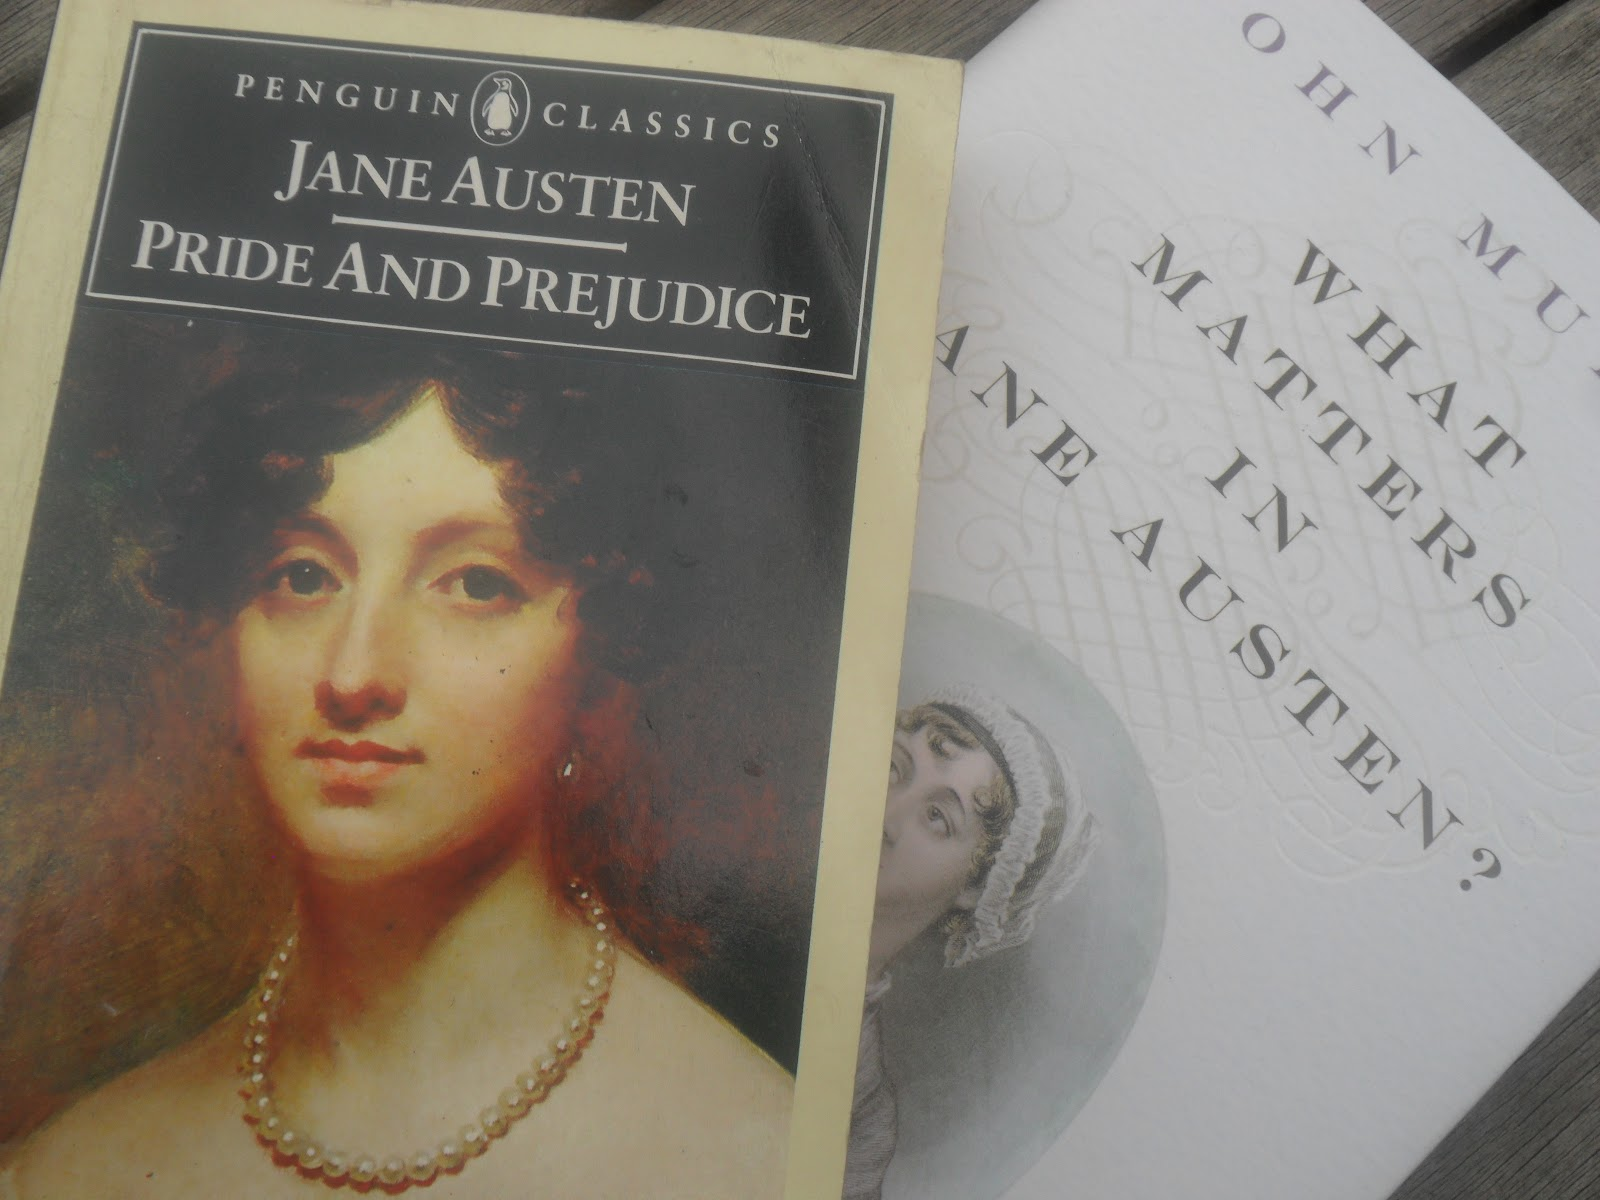 social class in jane austen Jane austen wrote her novels some two centuries ago - so why is she still so popular her legacy of social commentary and scathing wit has cemented her place in literary history, and jane moved as part of society, and her writing reflected some scathing wit, cleverly poking fun at the upper class by.